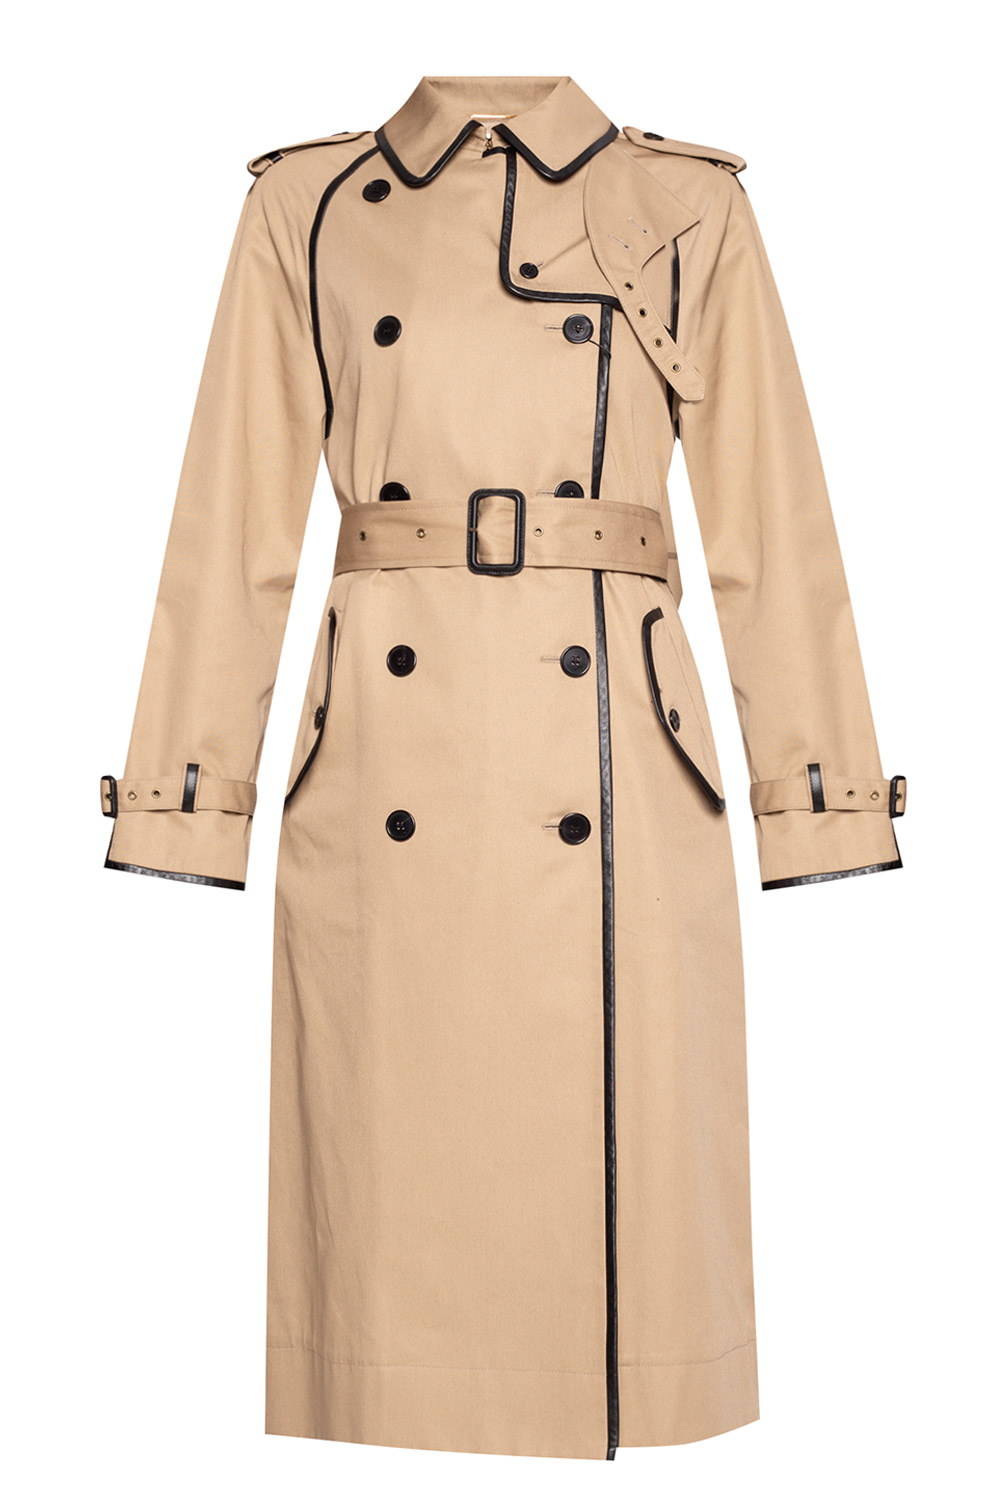 Saint Laurent Double-breasted trench coat